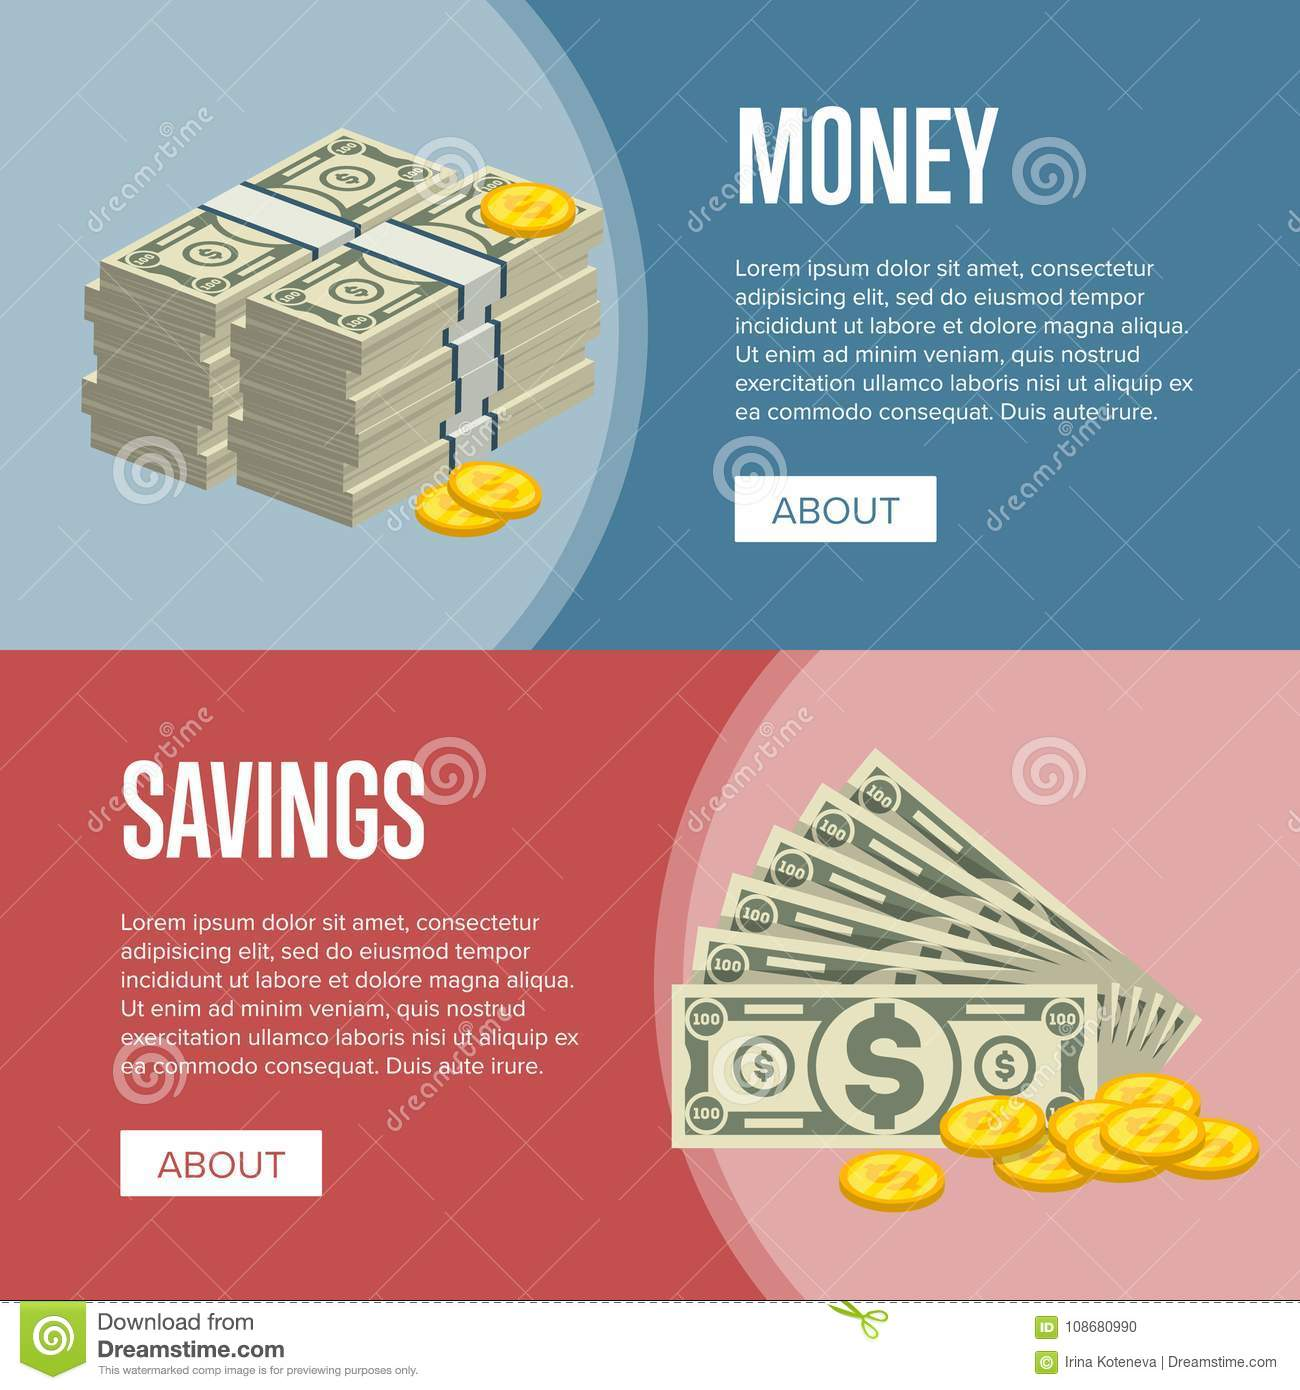 making money and savings flyers stock vector illustration of